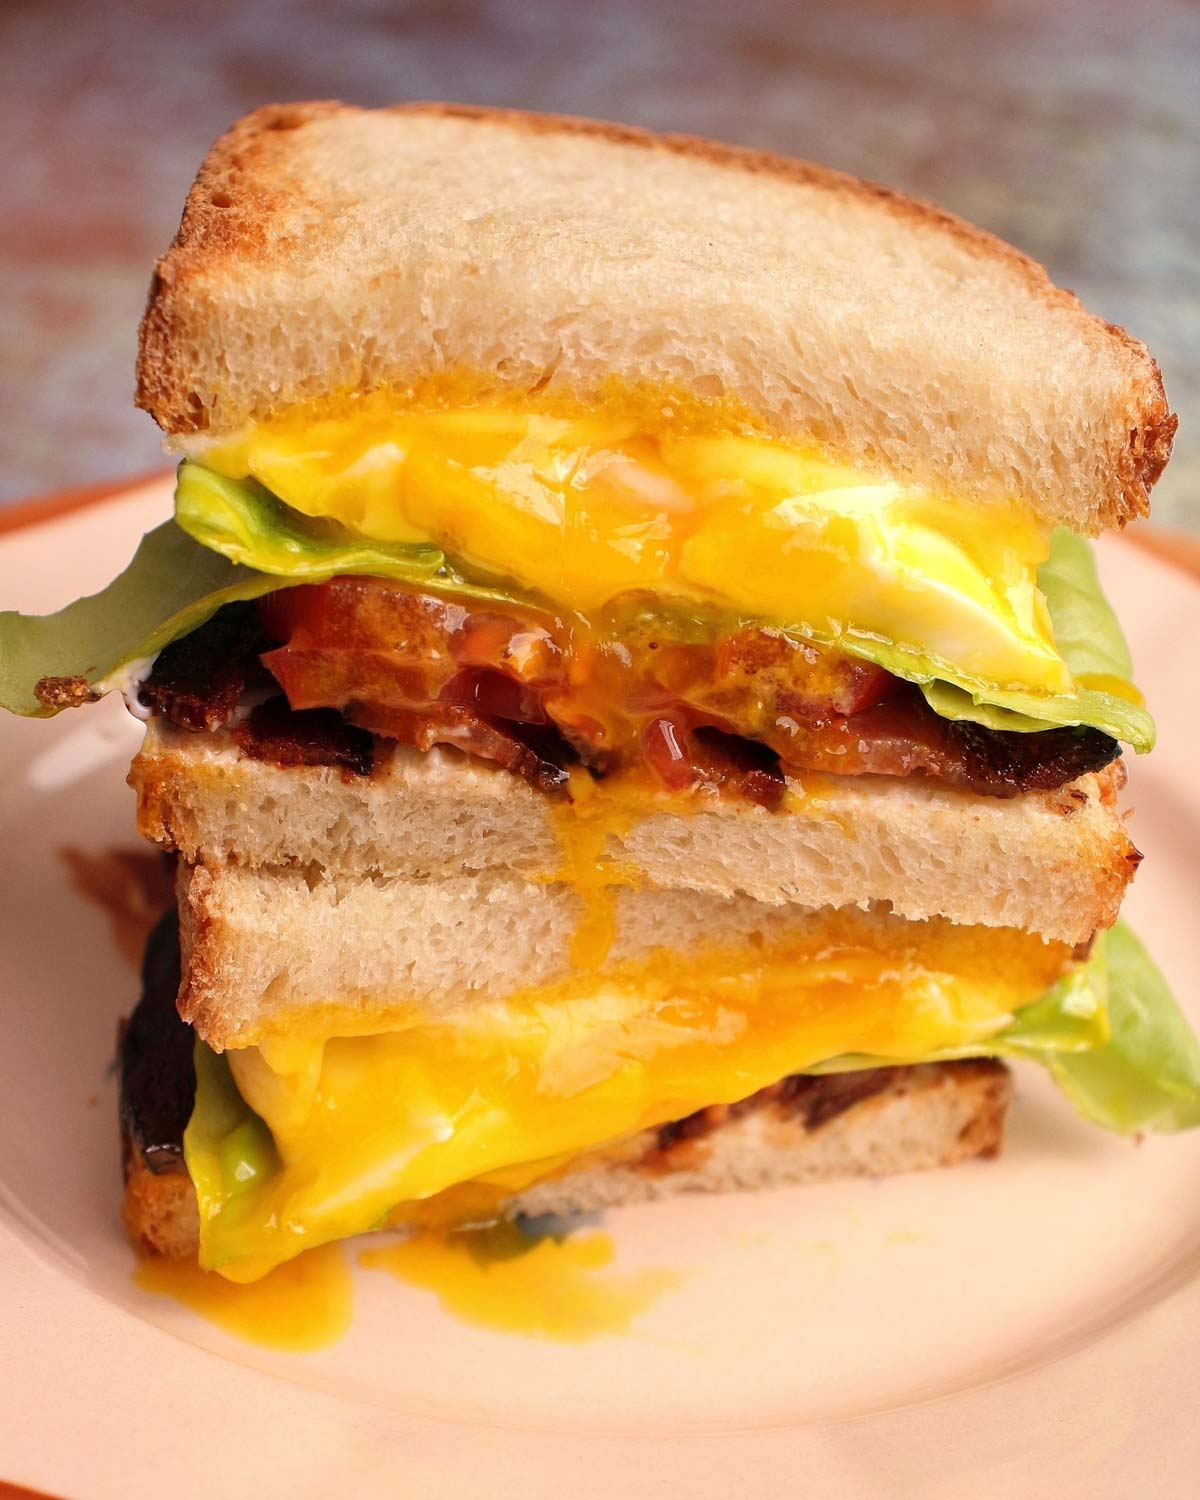 Two halves of a Spanglish sandwich piled on top of each other on a plate.